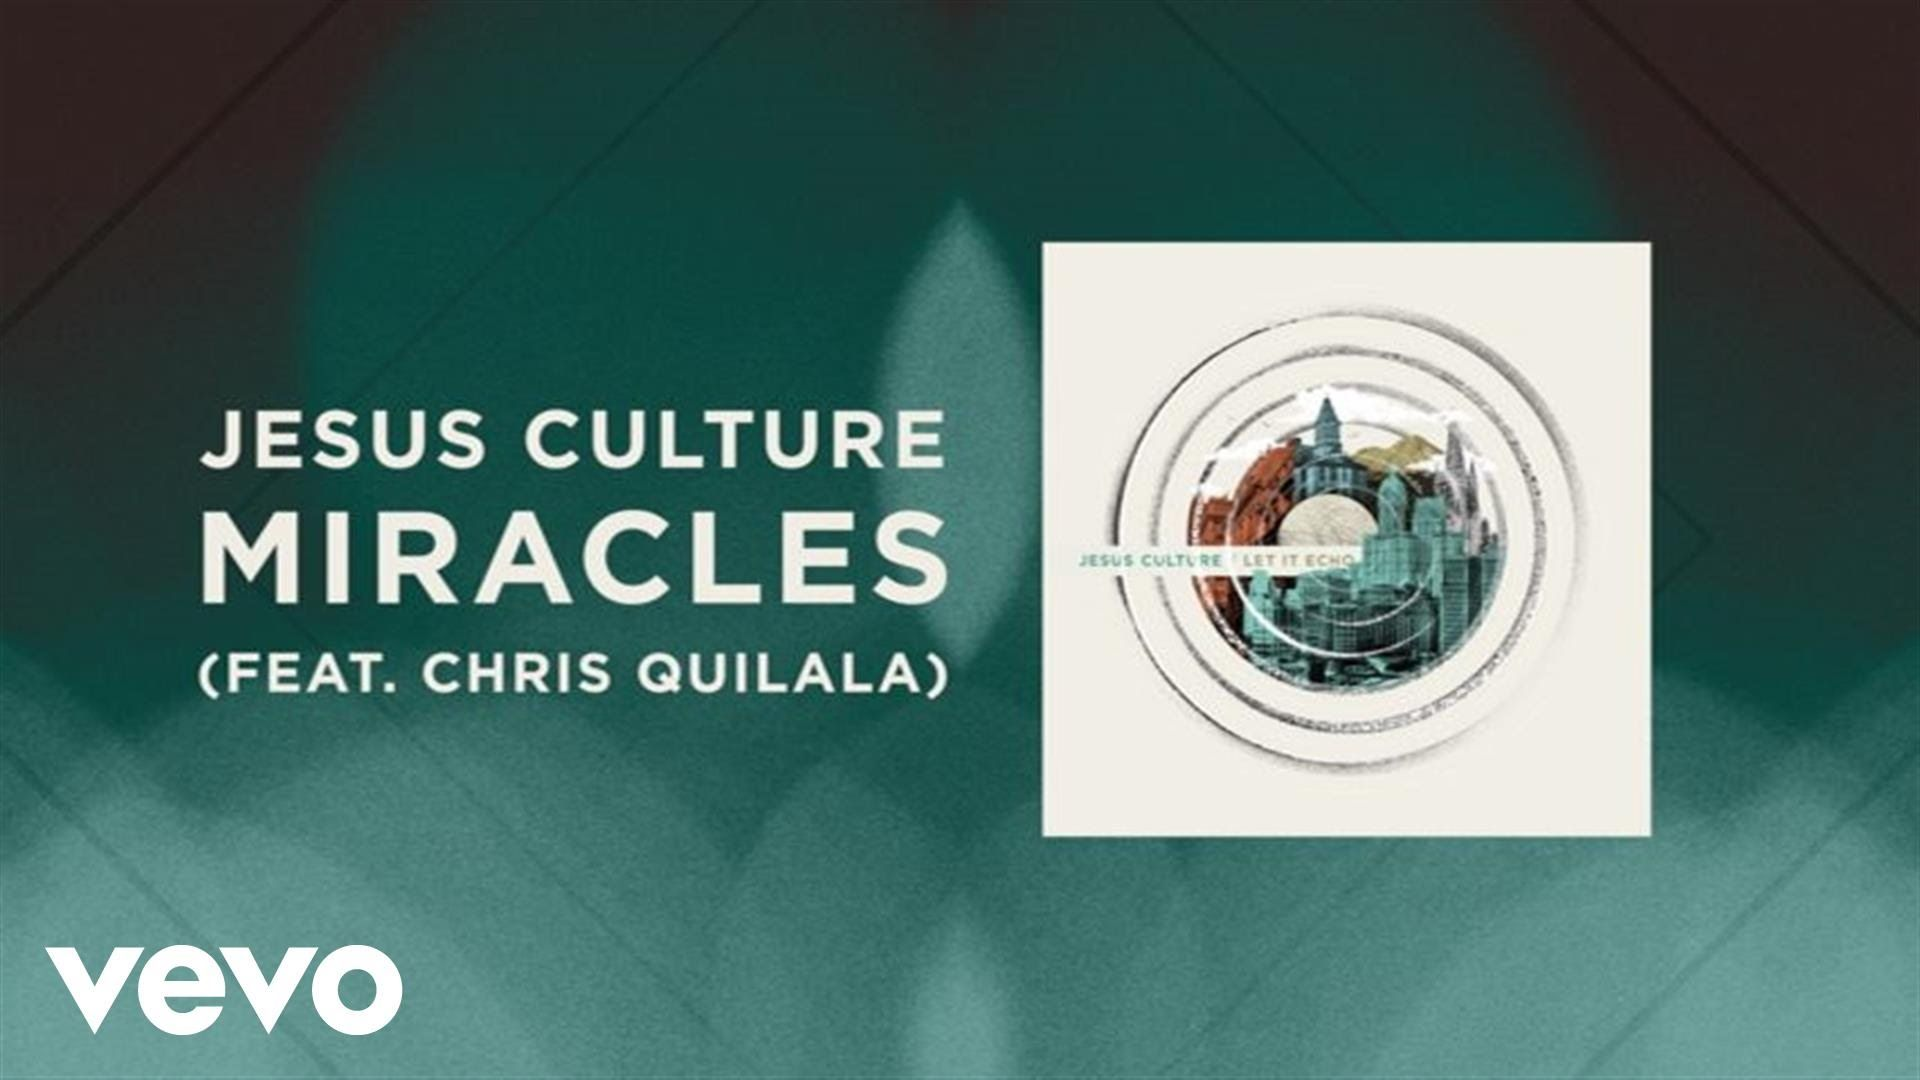 Jesus culture miracles livelyrics and chords ft chris jesus culture miracles livelyrics and chords ft chris quilala hexwebz Images